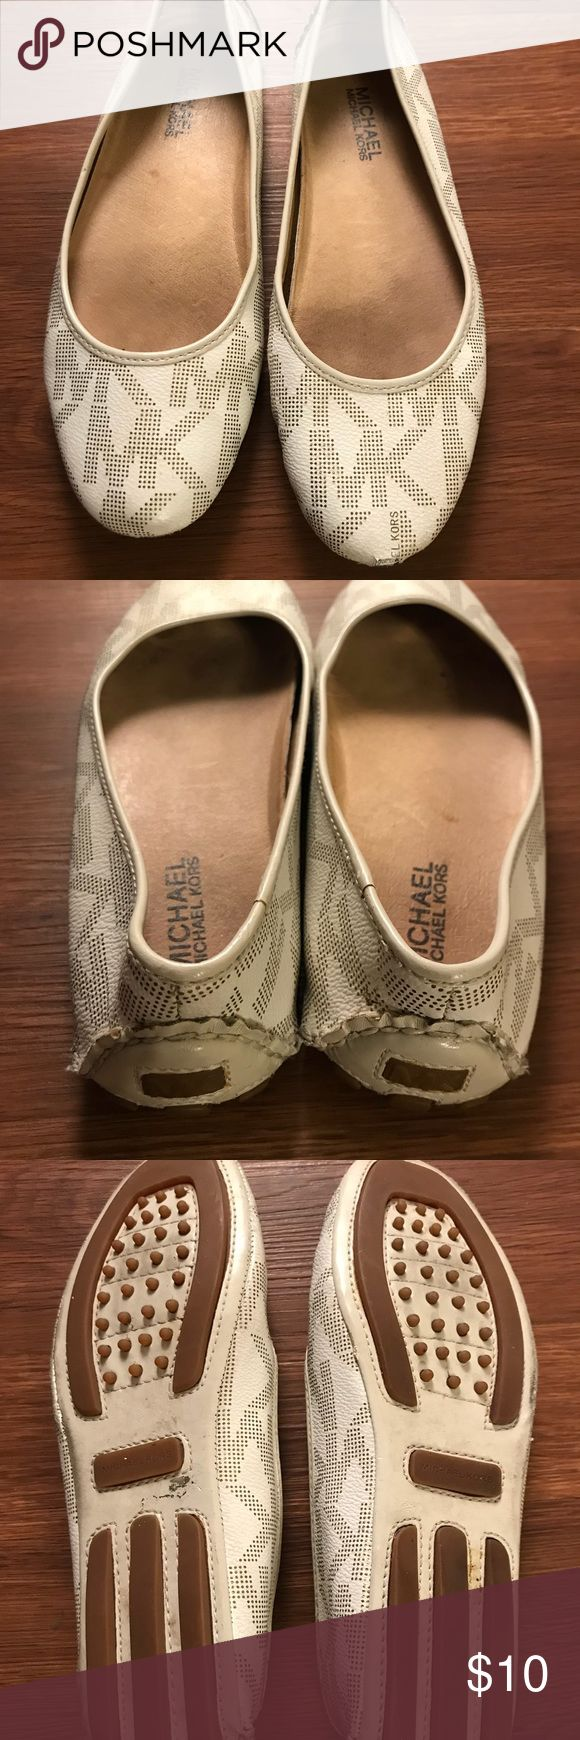 Michael Kors White and Gold Flats Authentic white and gold MK logo flats.  Scrape on left toe.  Otherwise great condition.  Priced to reflect condition.  Could be fixed with white shoe polish I suppose. Michael Kors Shoes Flats & Loafers